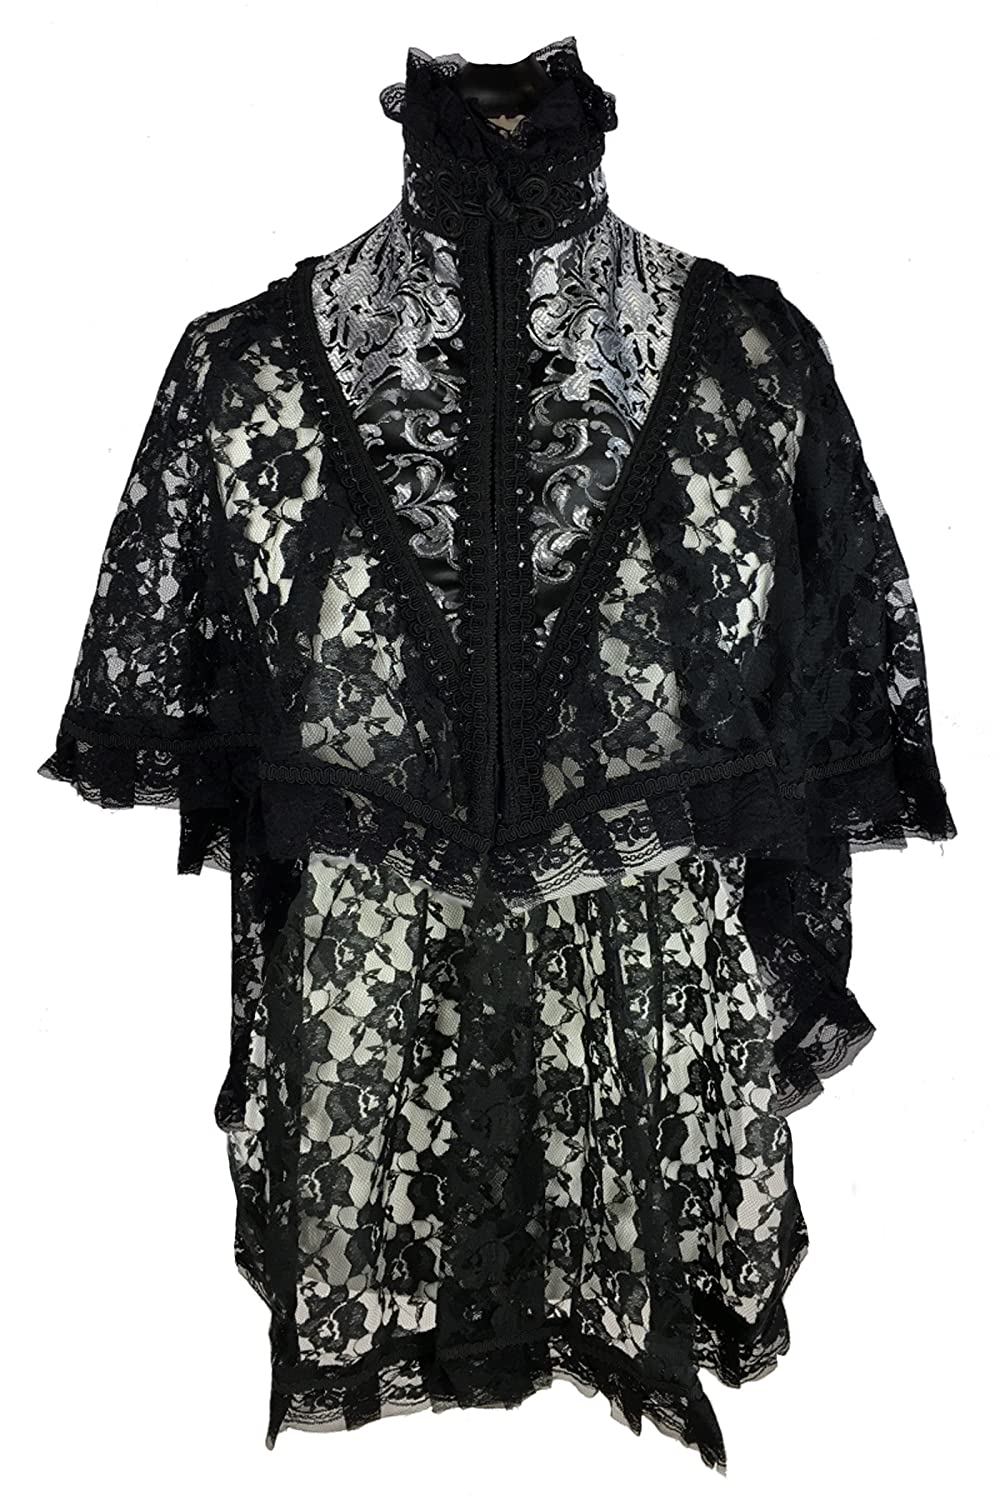 Victorian Blouses, Tops, Shirts, Sweaters DangerousFX Burleska Black Lace Gothic Victorian High Neck Vampire Fishtail Cape Cloak Wrap $48.10 AT vintagedancer.com